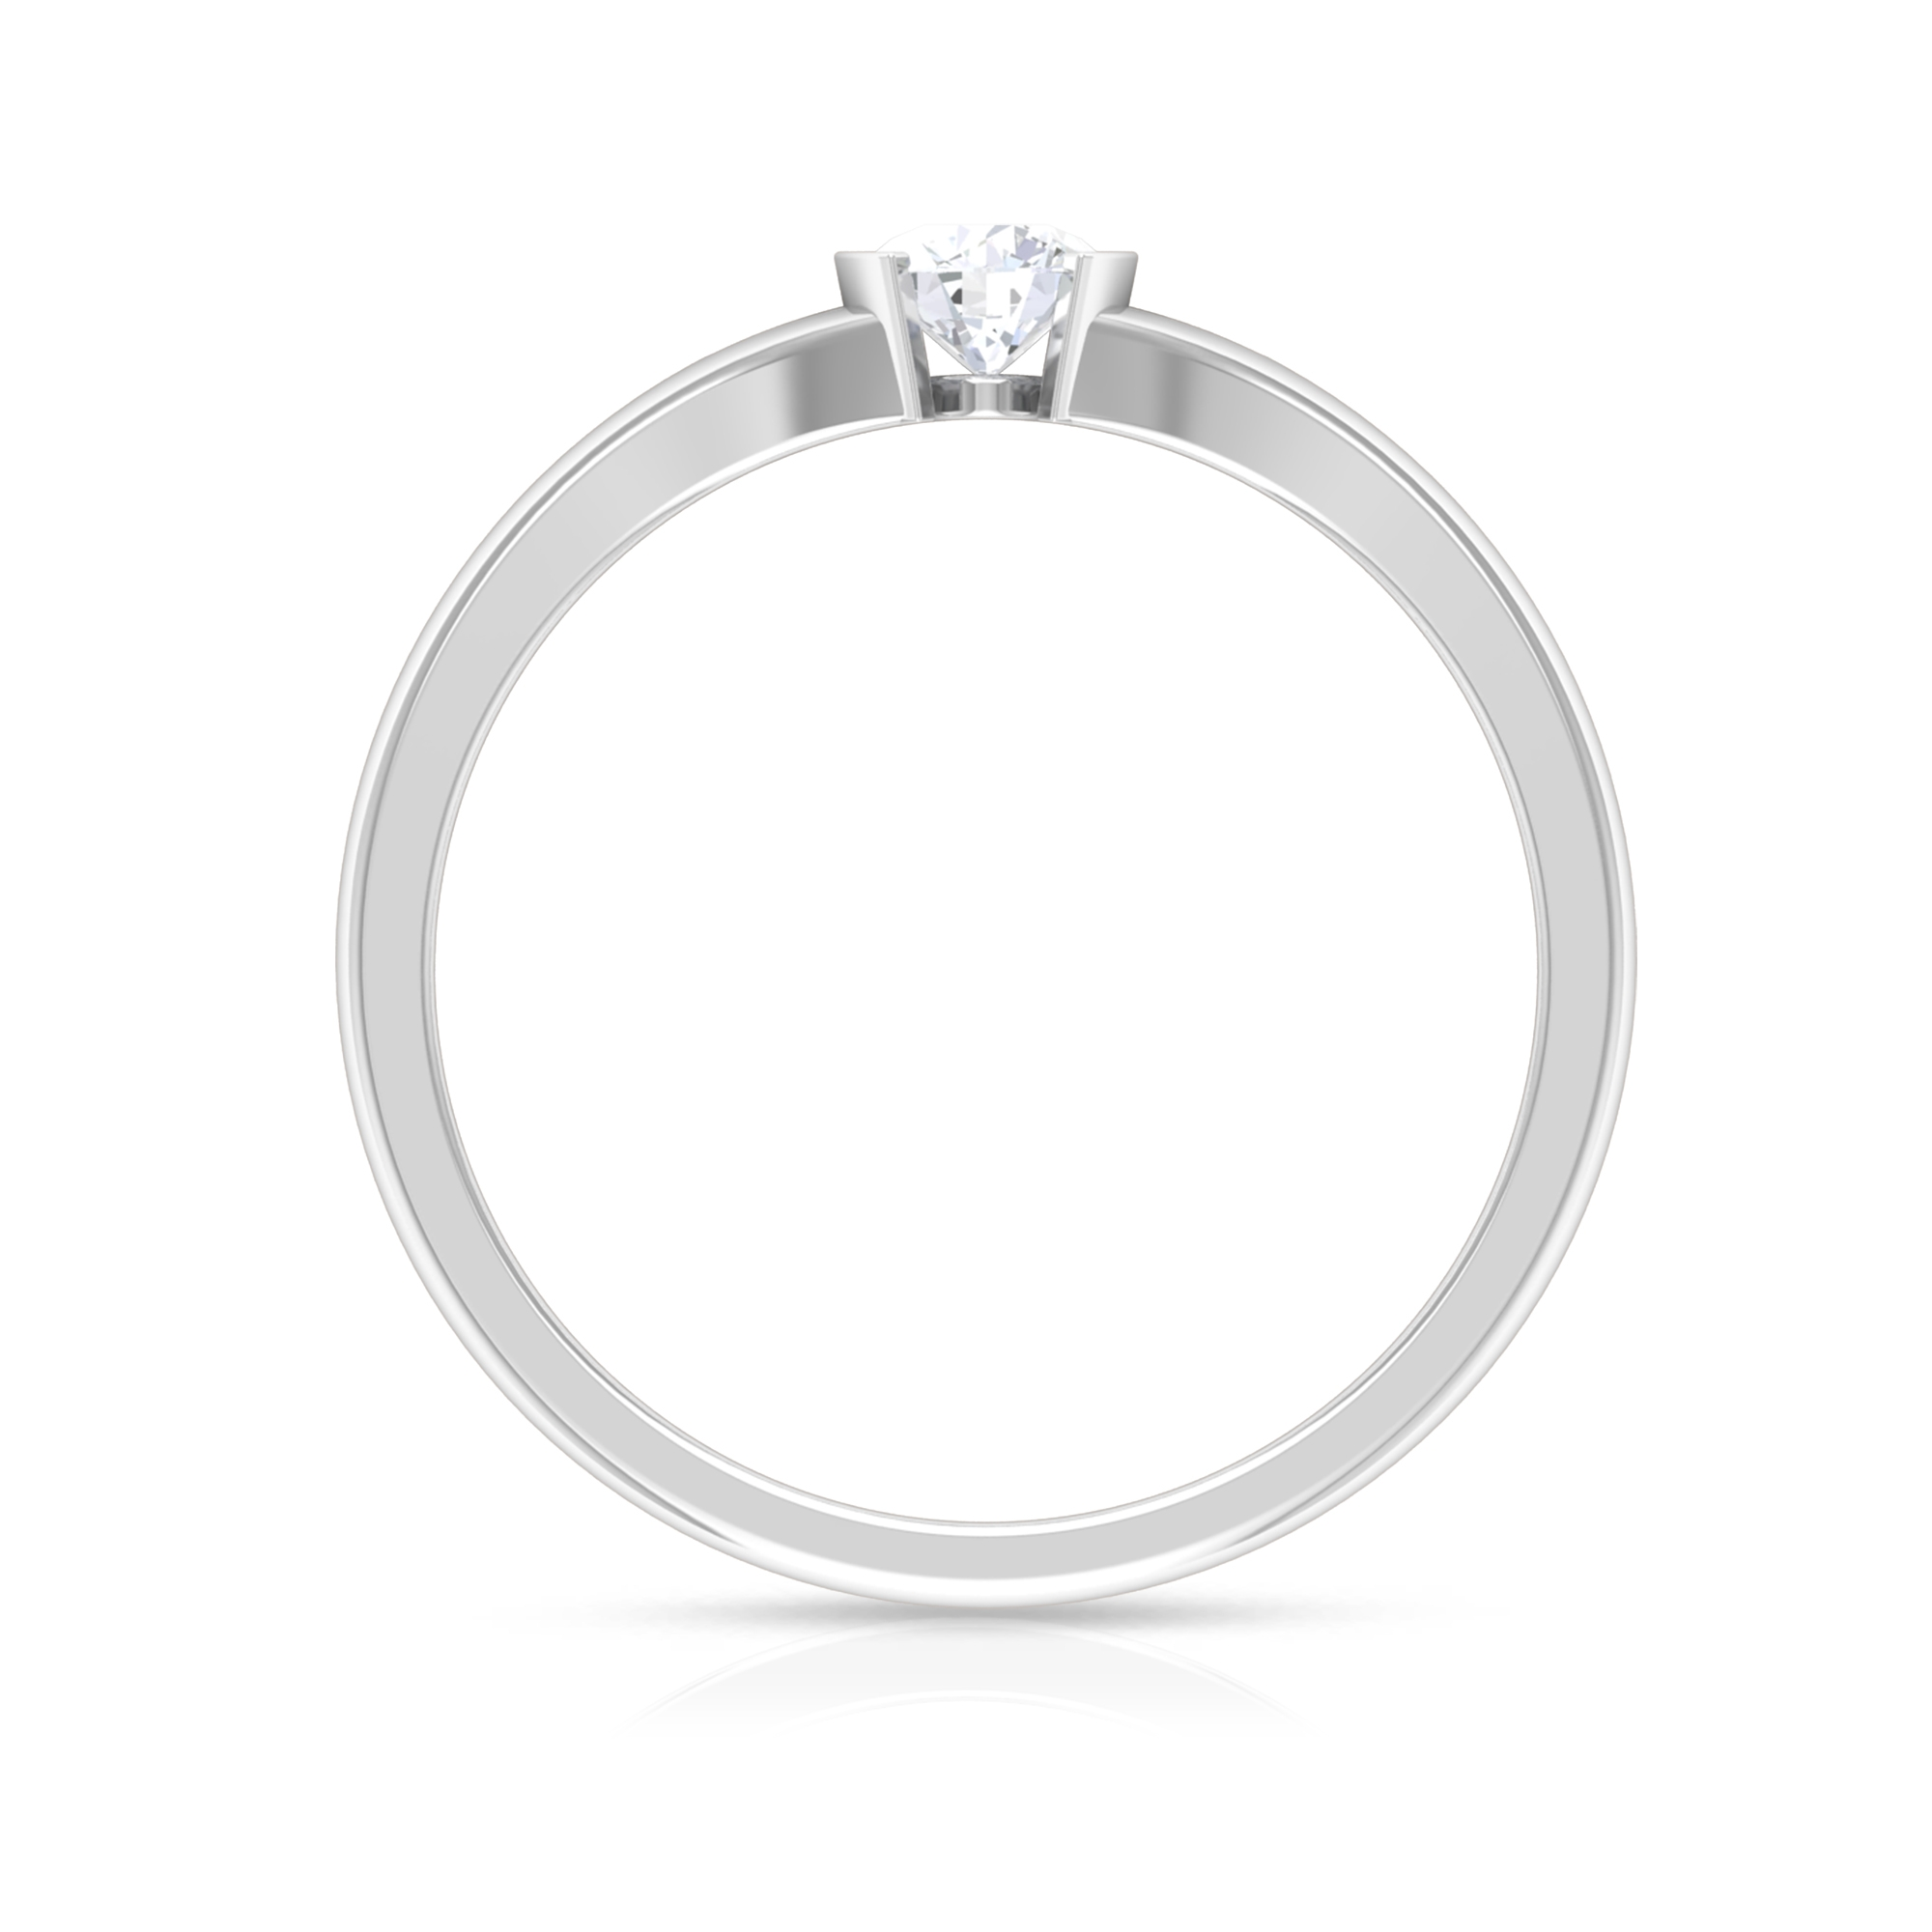 4 MM Round Cut Diamond Solitaire Ring in Half Bezel Setting with Split Shank